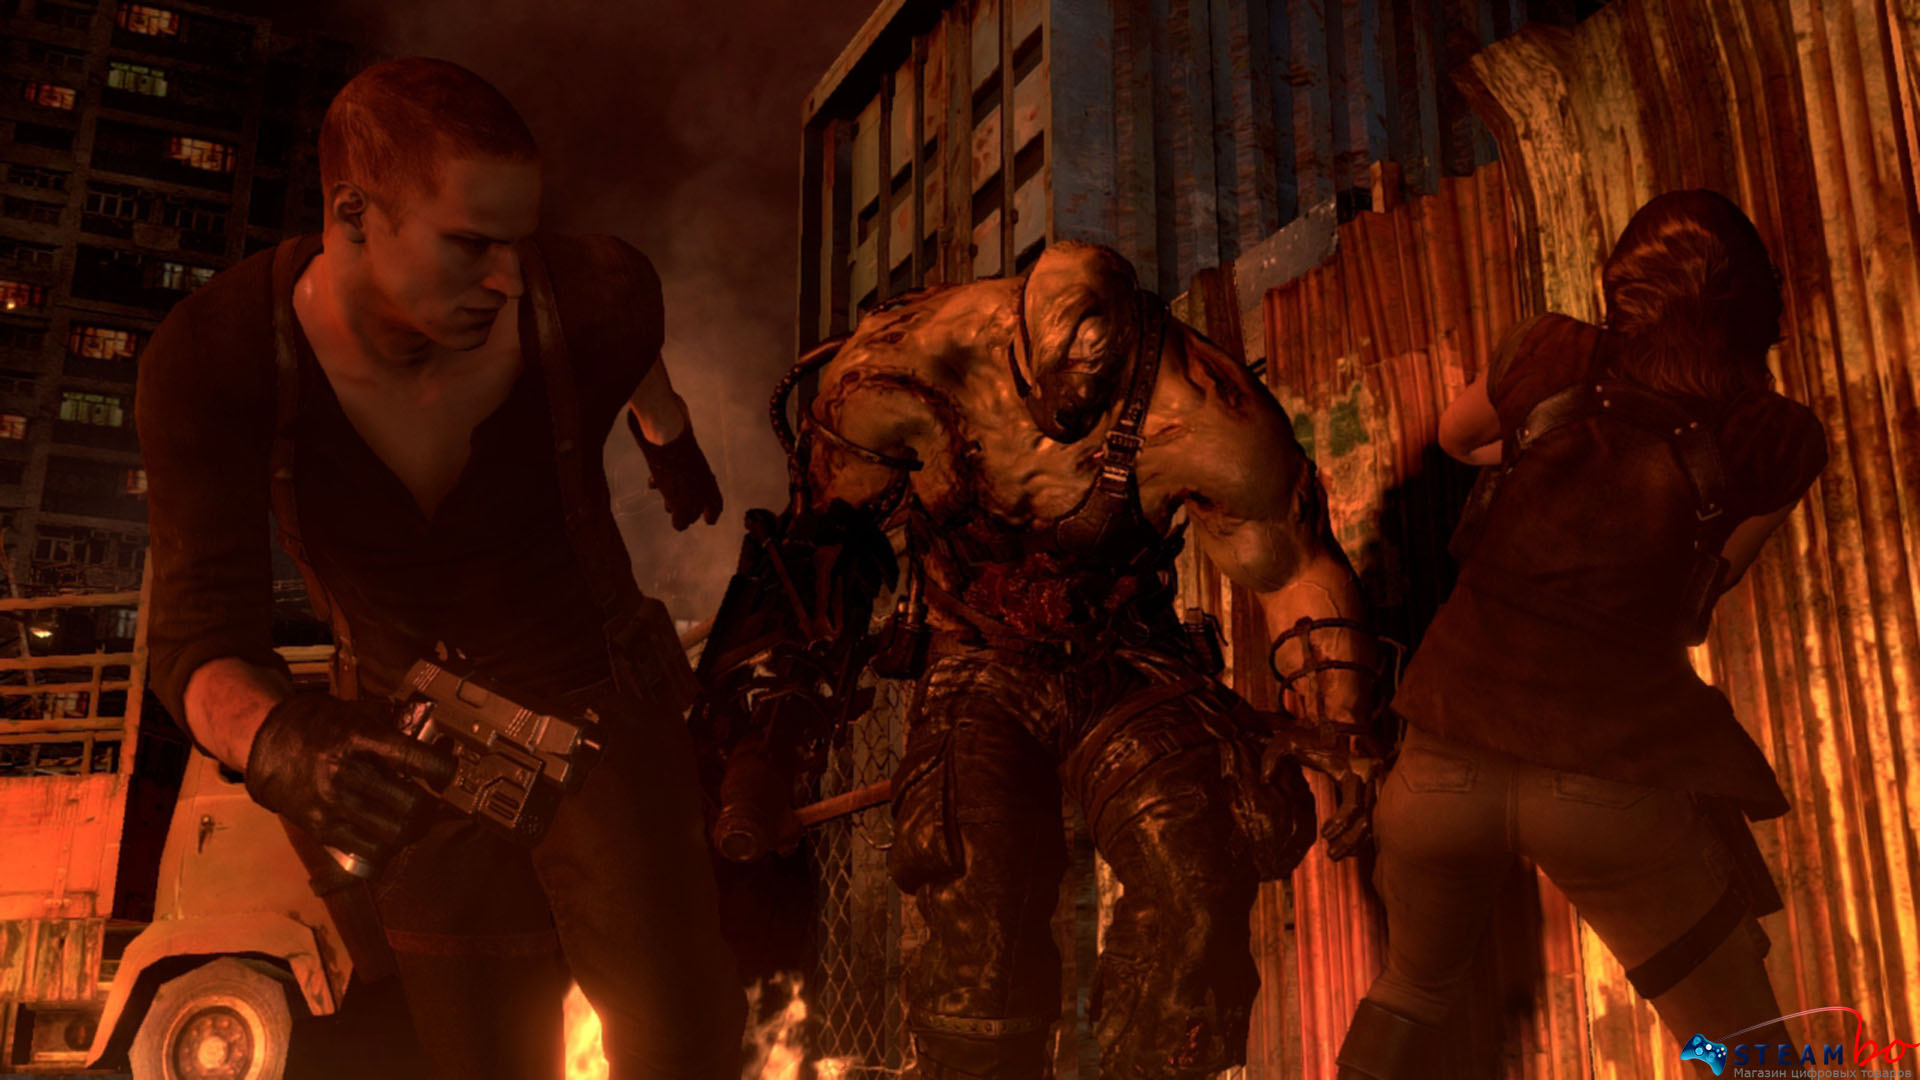 Resident Evil 6 Complete Pack RU/CIS (Steam Gift)